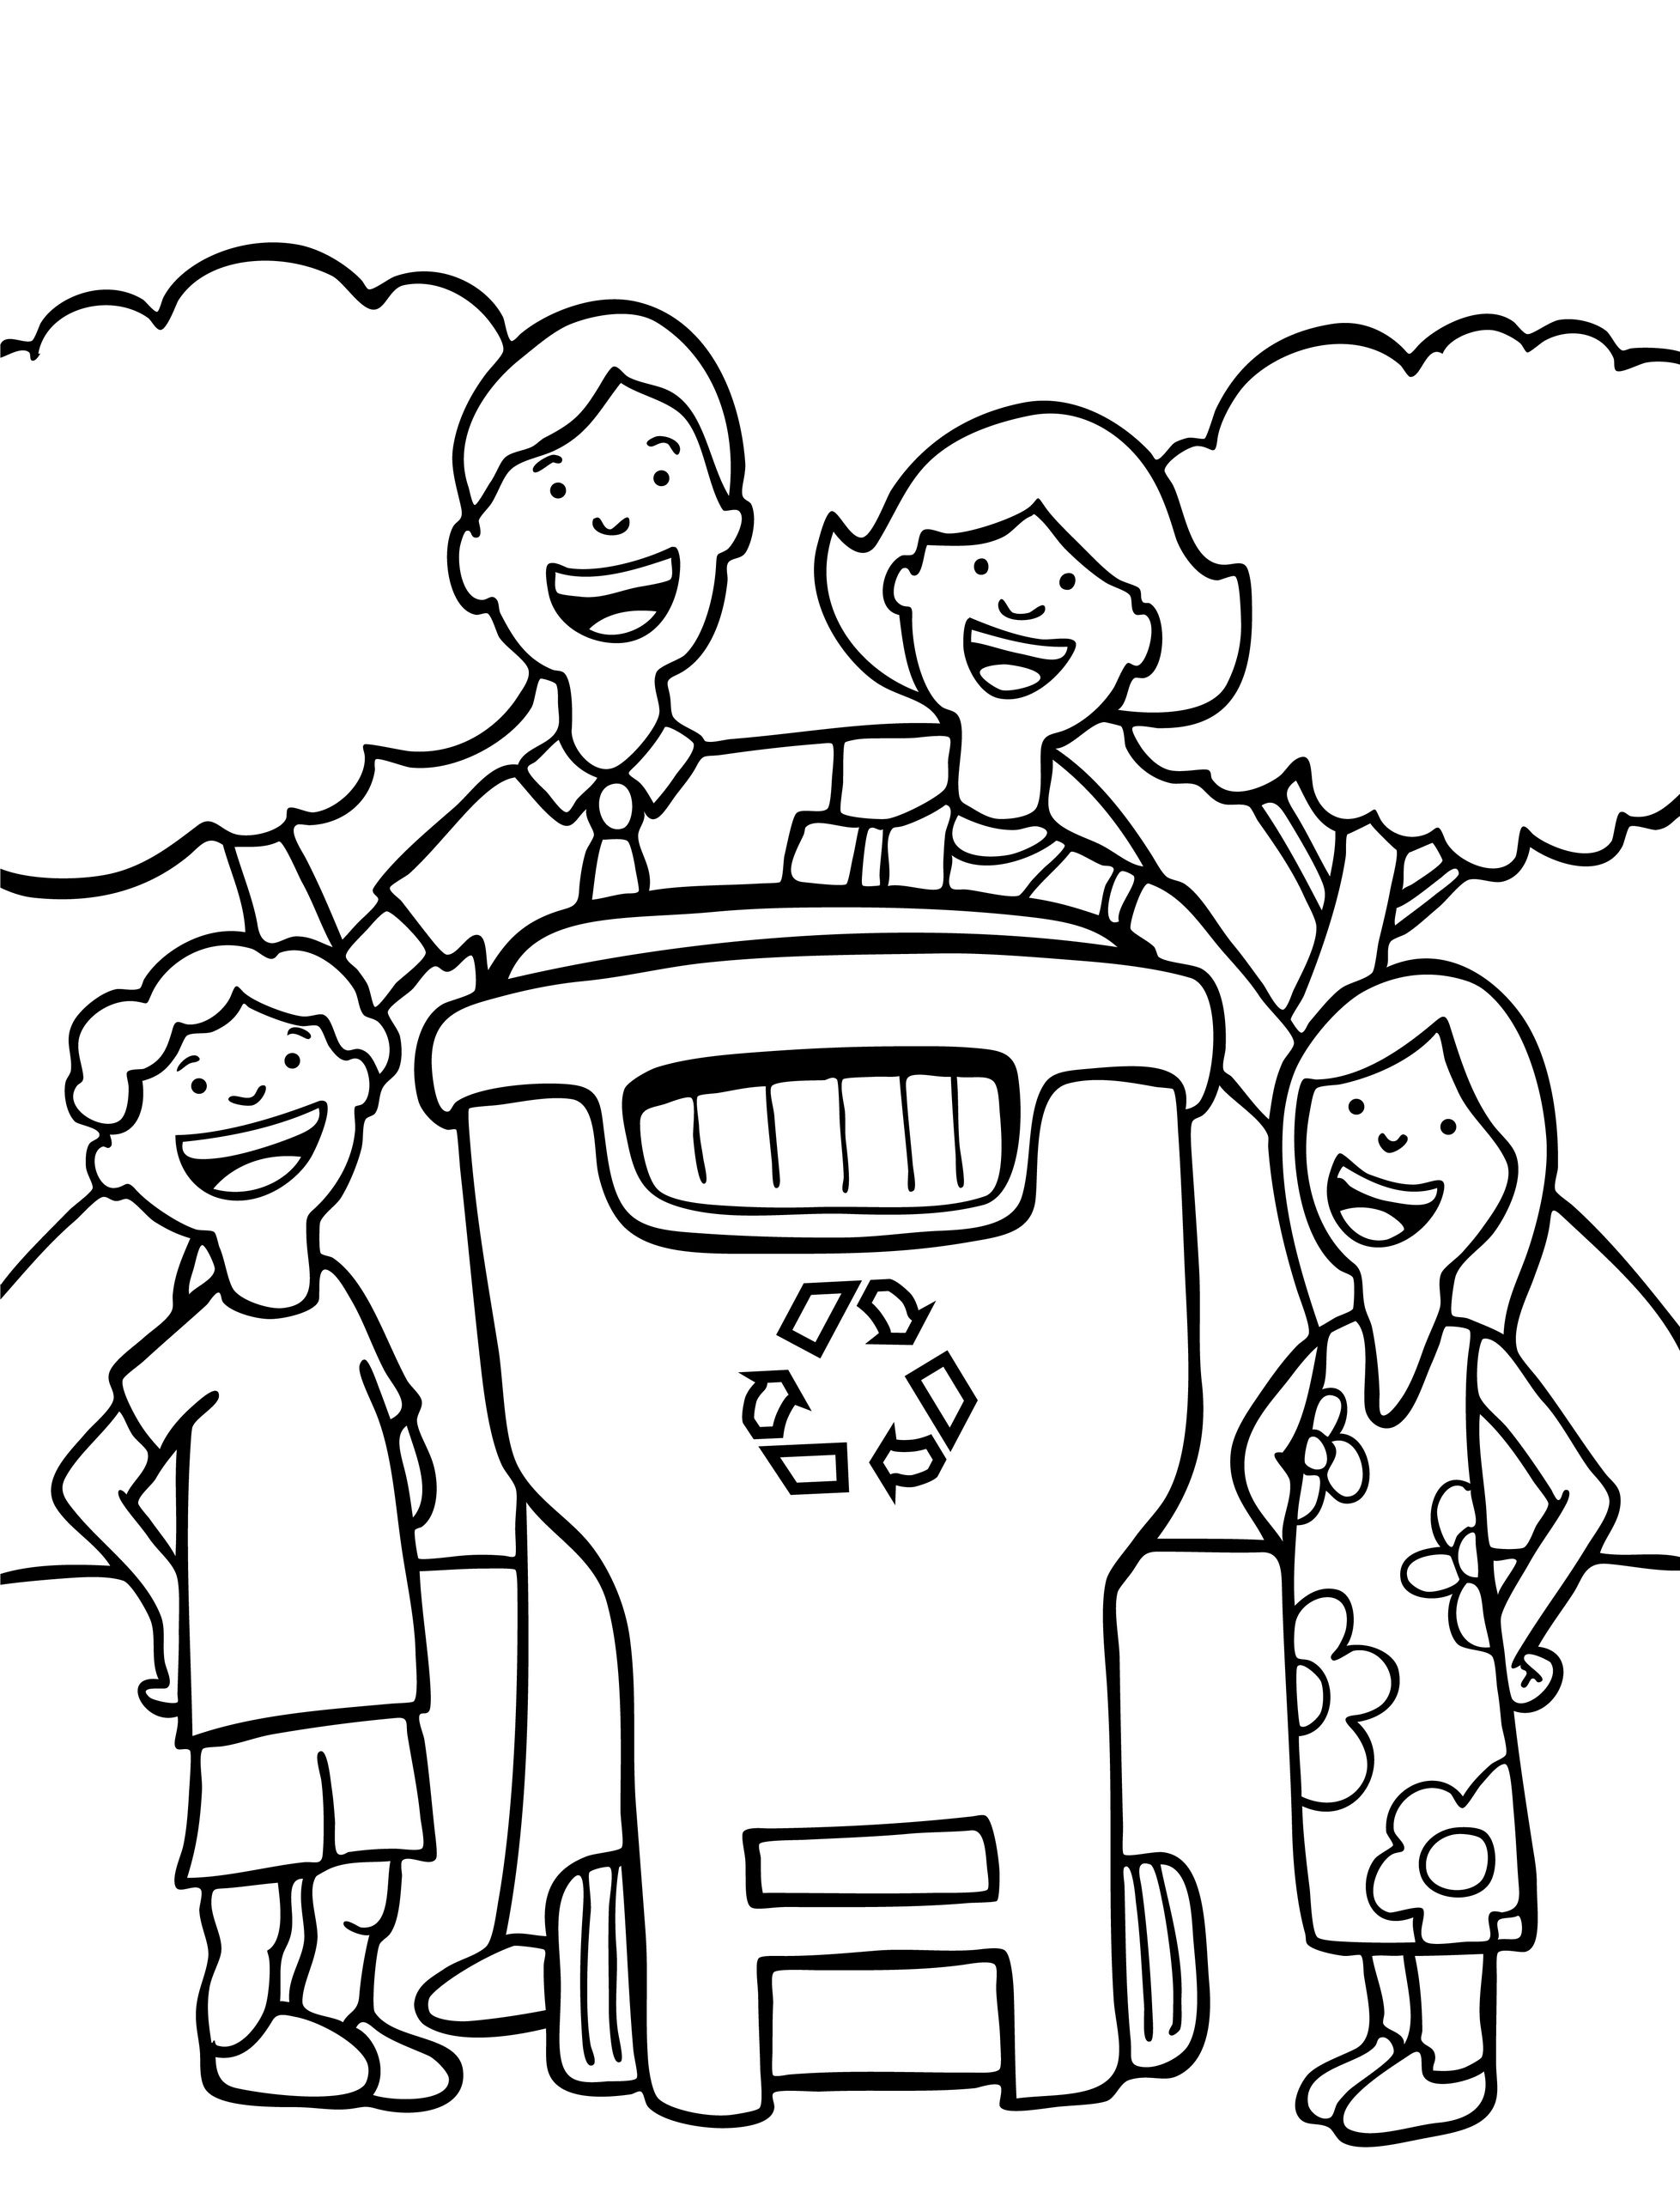 Recycle Coloring Page For Kids The Adventures Of A Plastic